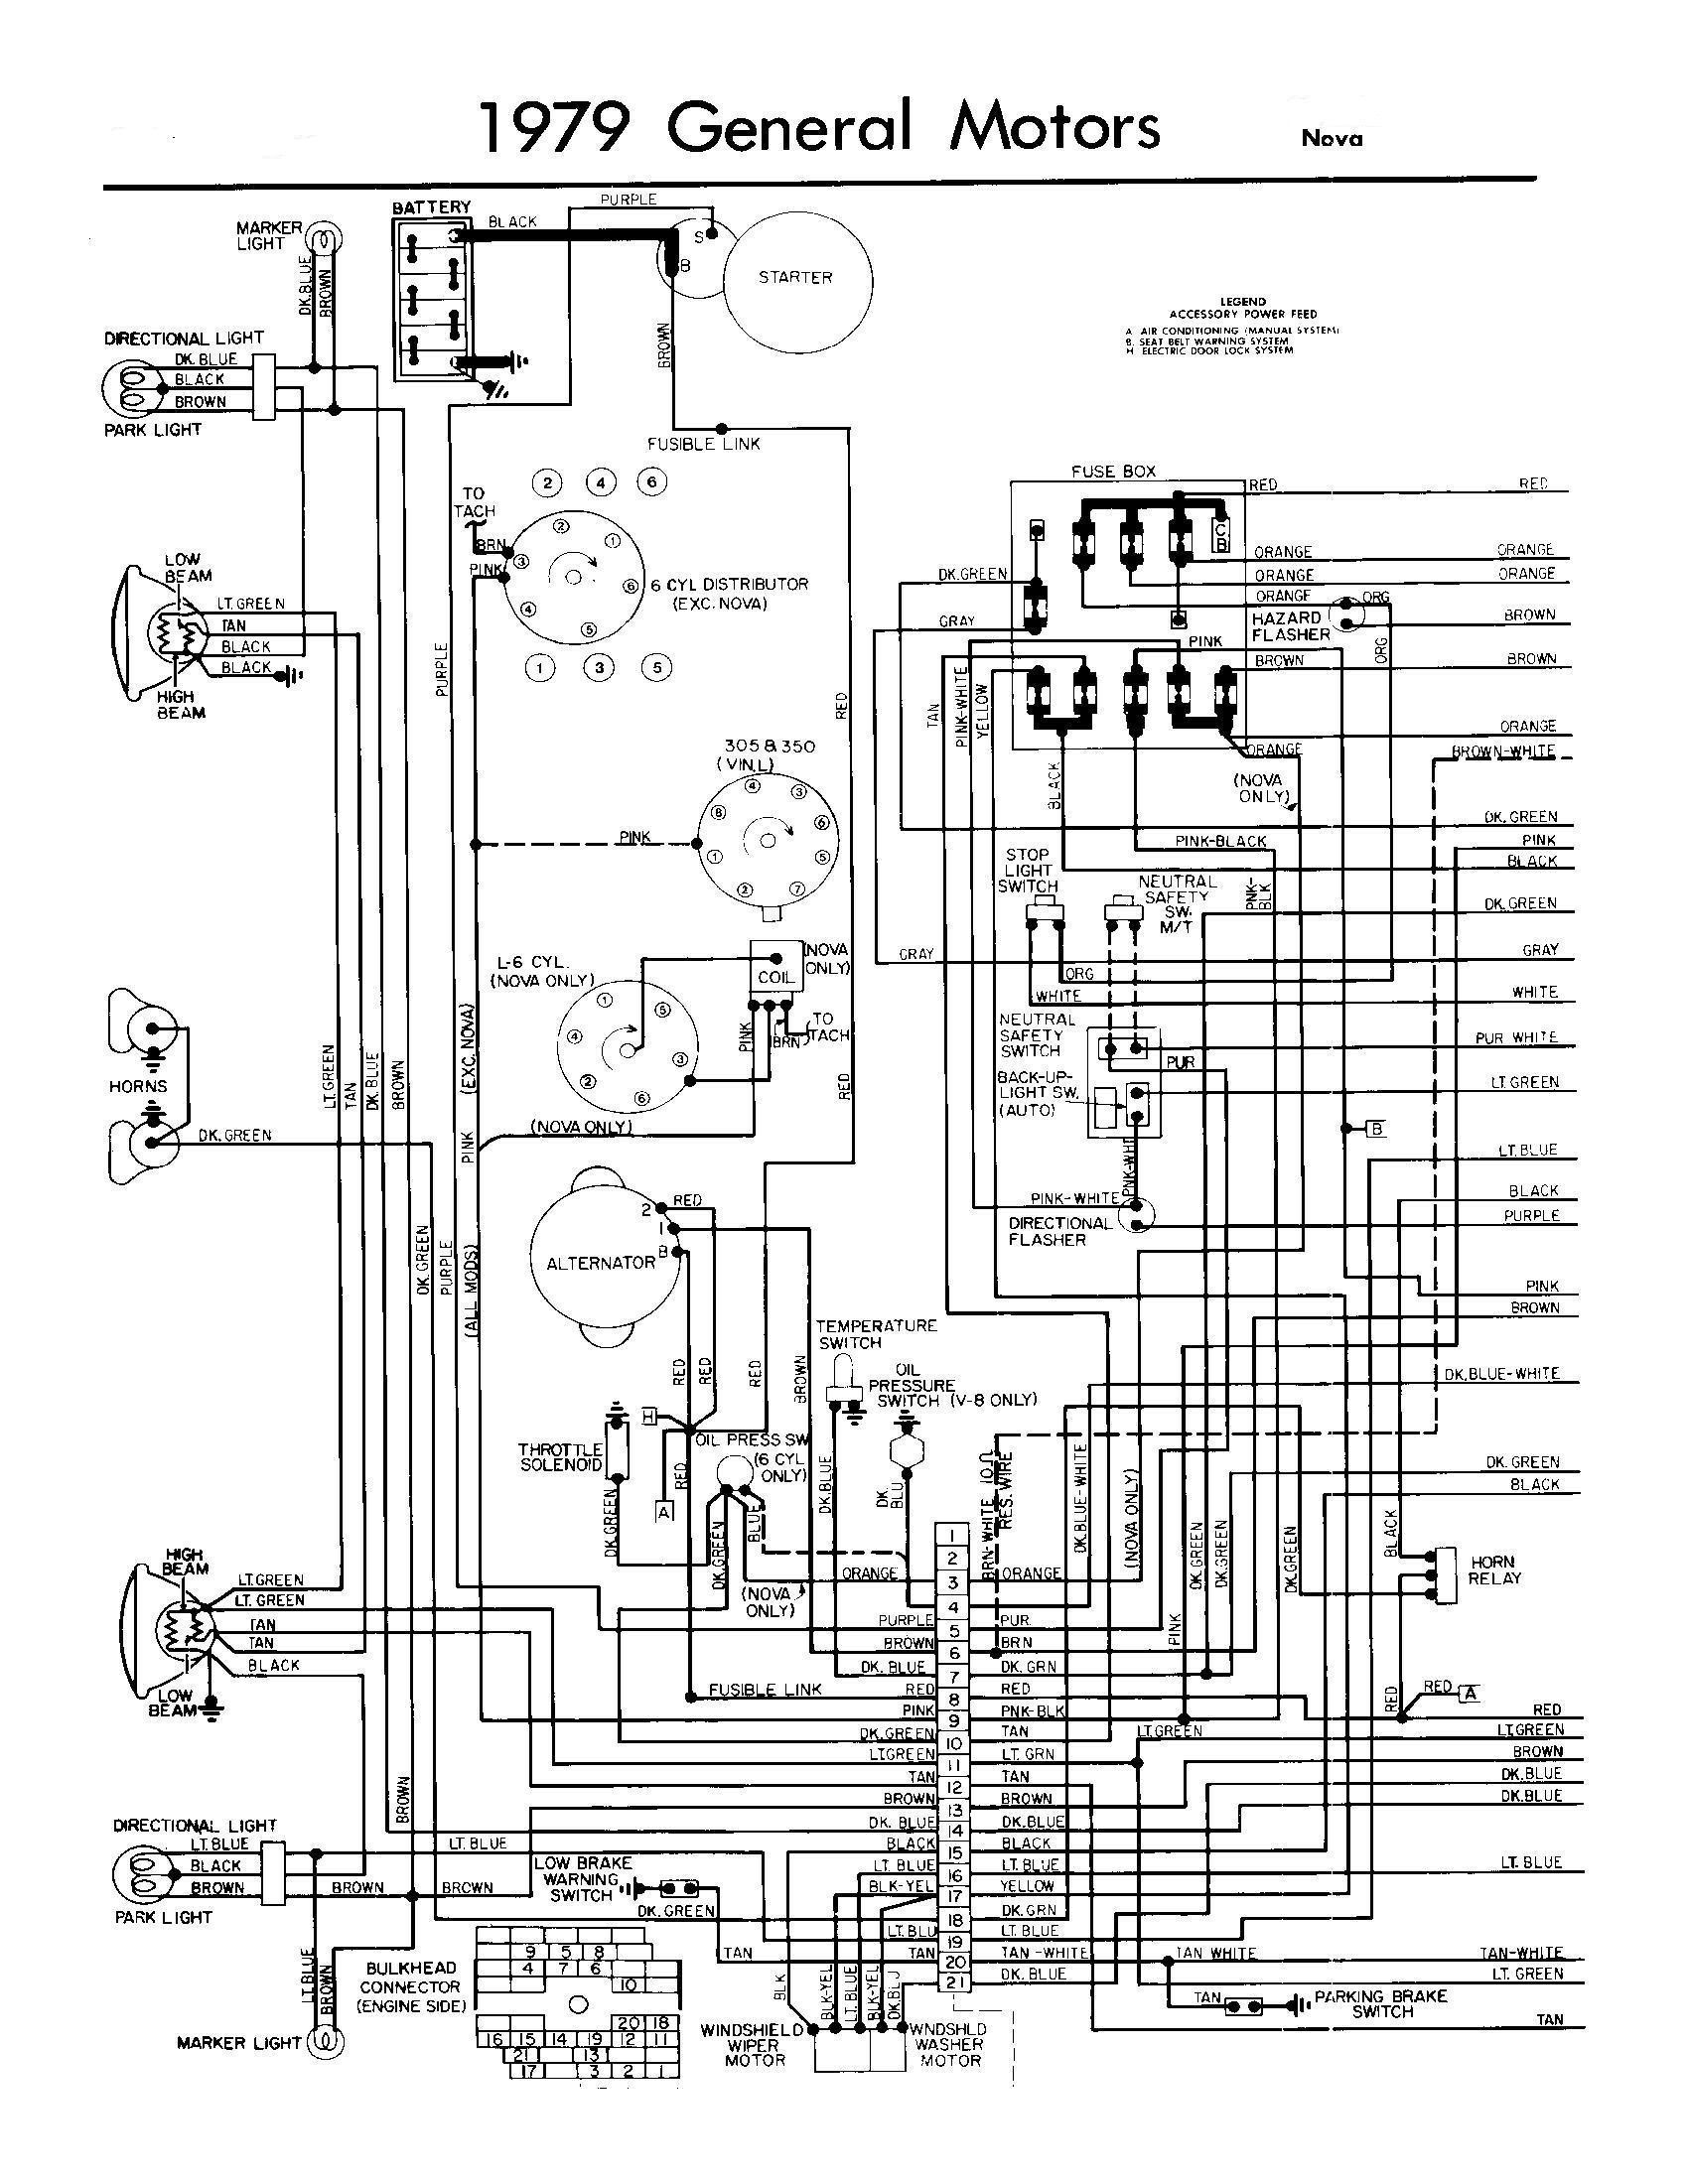 3 Wire Gm Alternator Wiring Diagram Chevy Nova